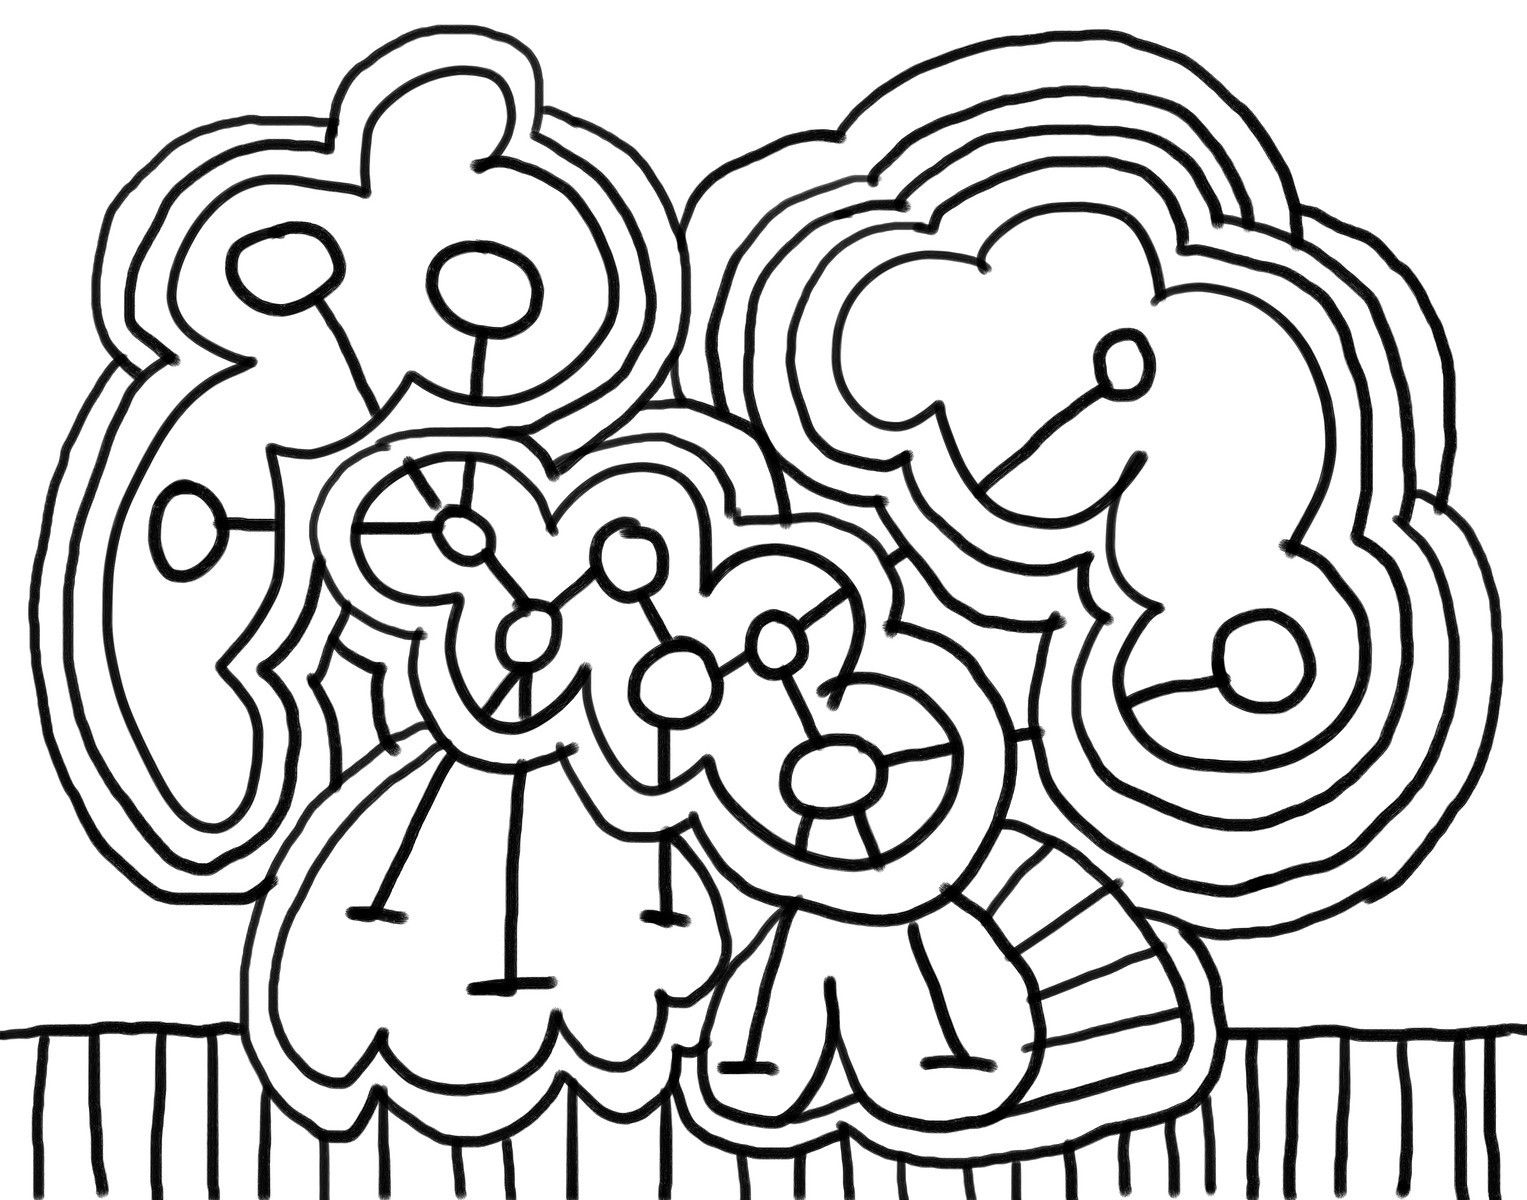 Free online coloring shapes - Turn Your Drawings And Pictures Into Online Coloring Pages